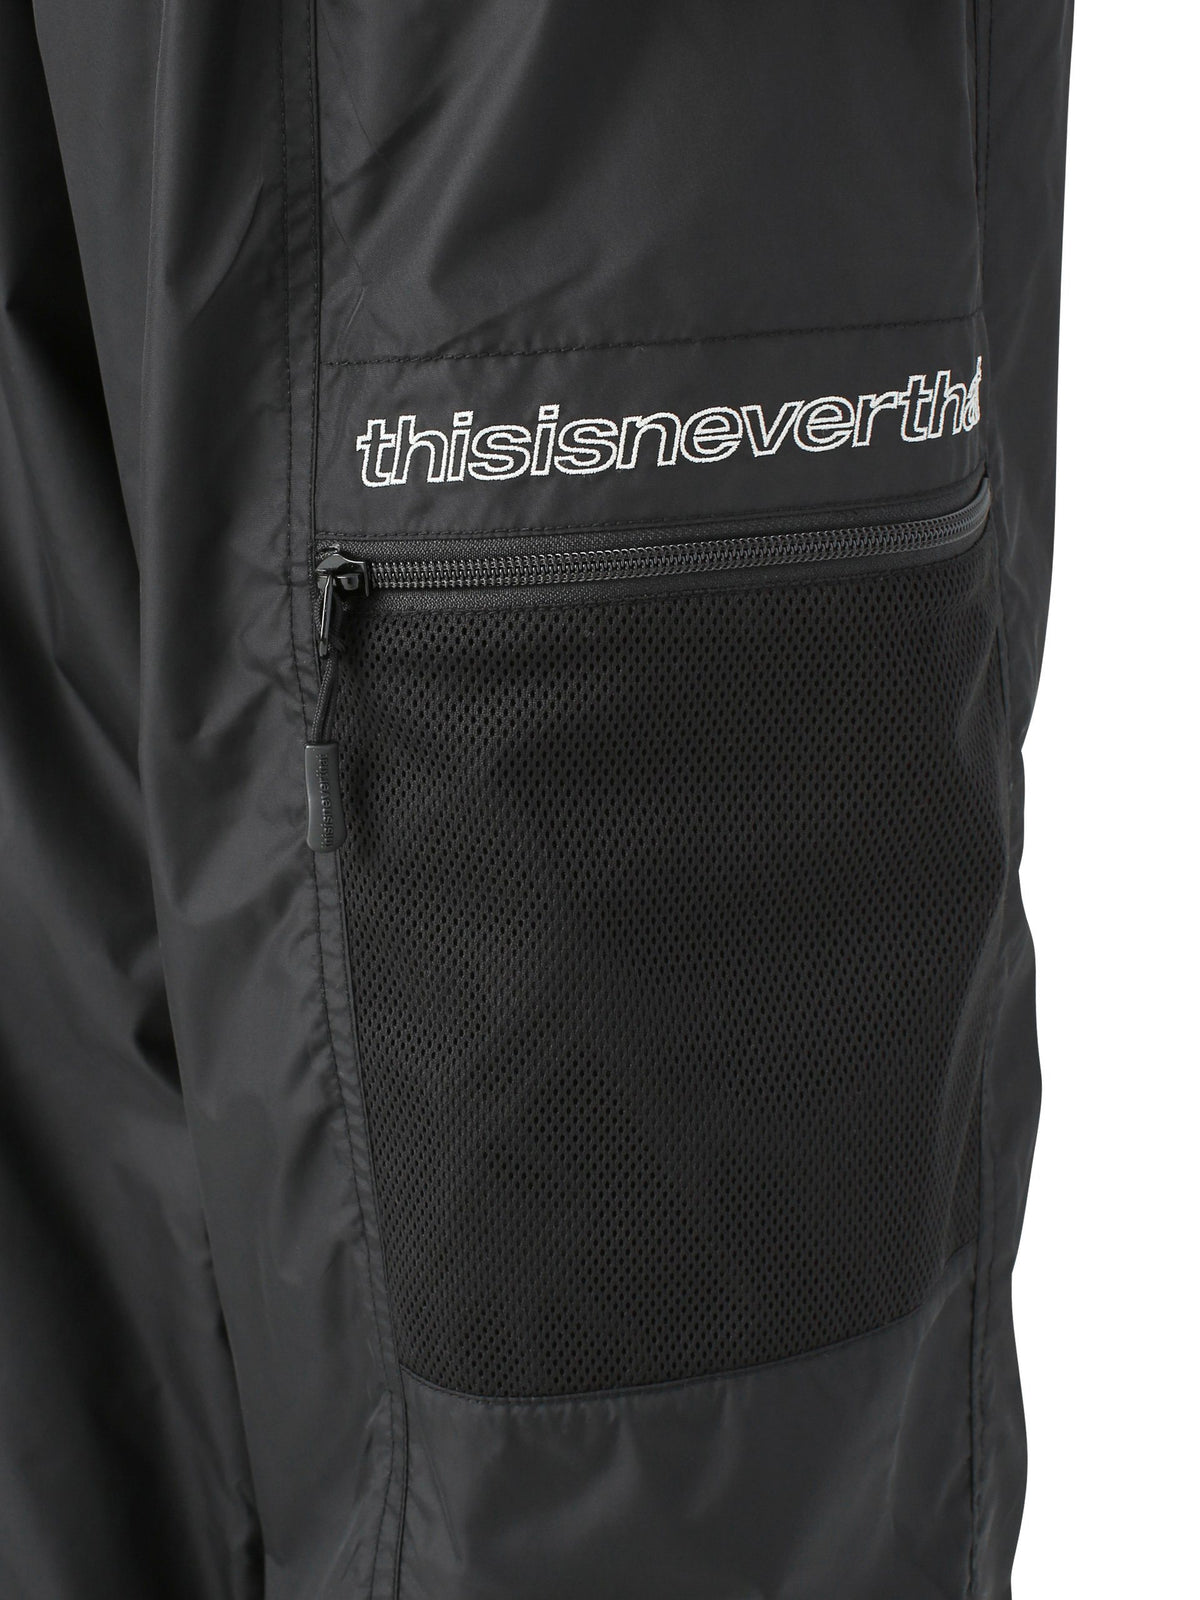 Mesh Pocket Pant - thisisneverthat